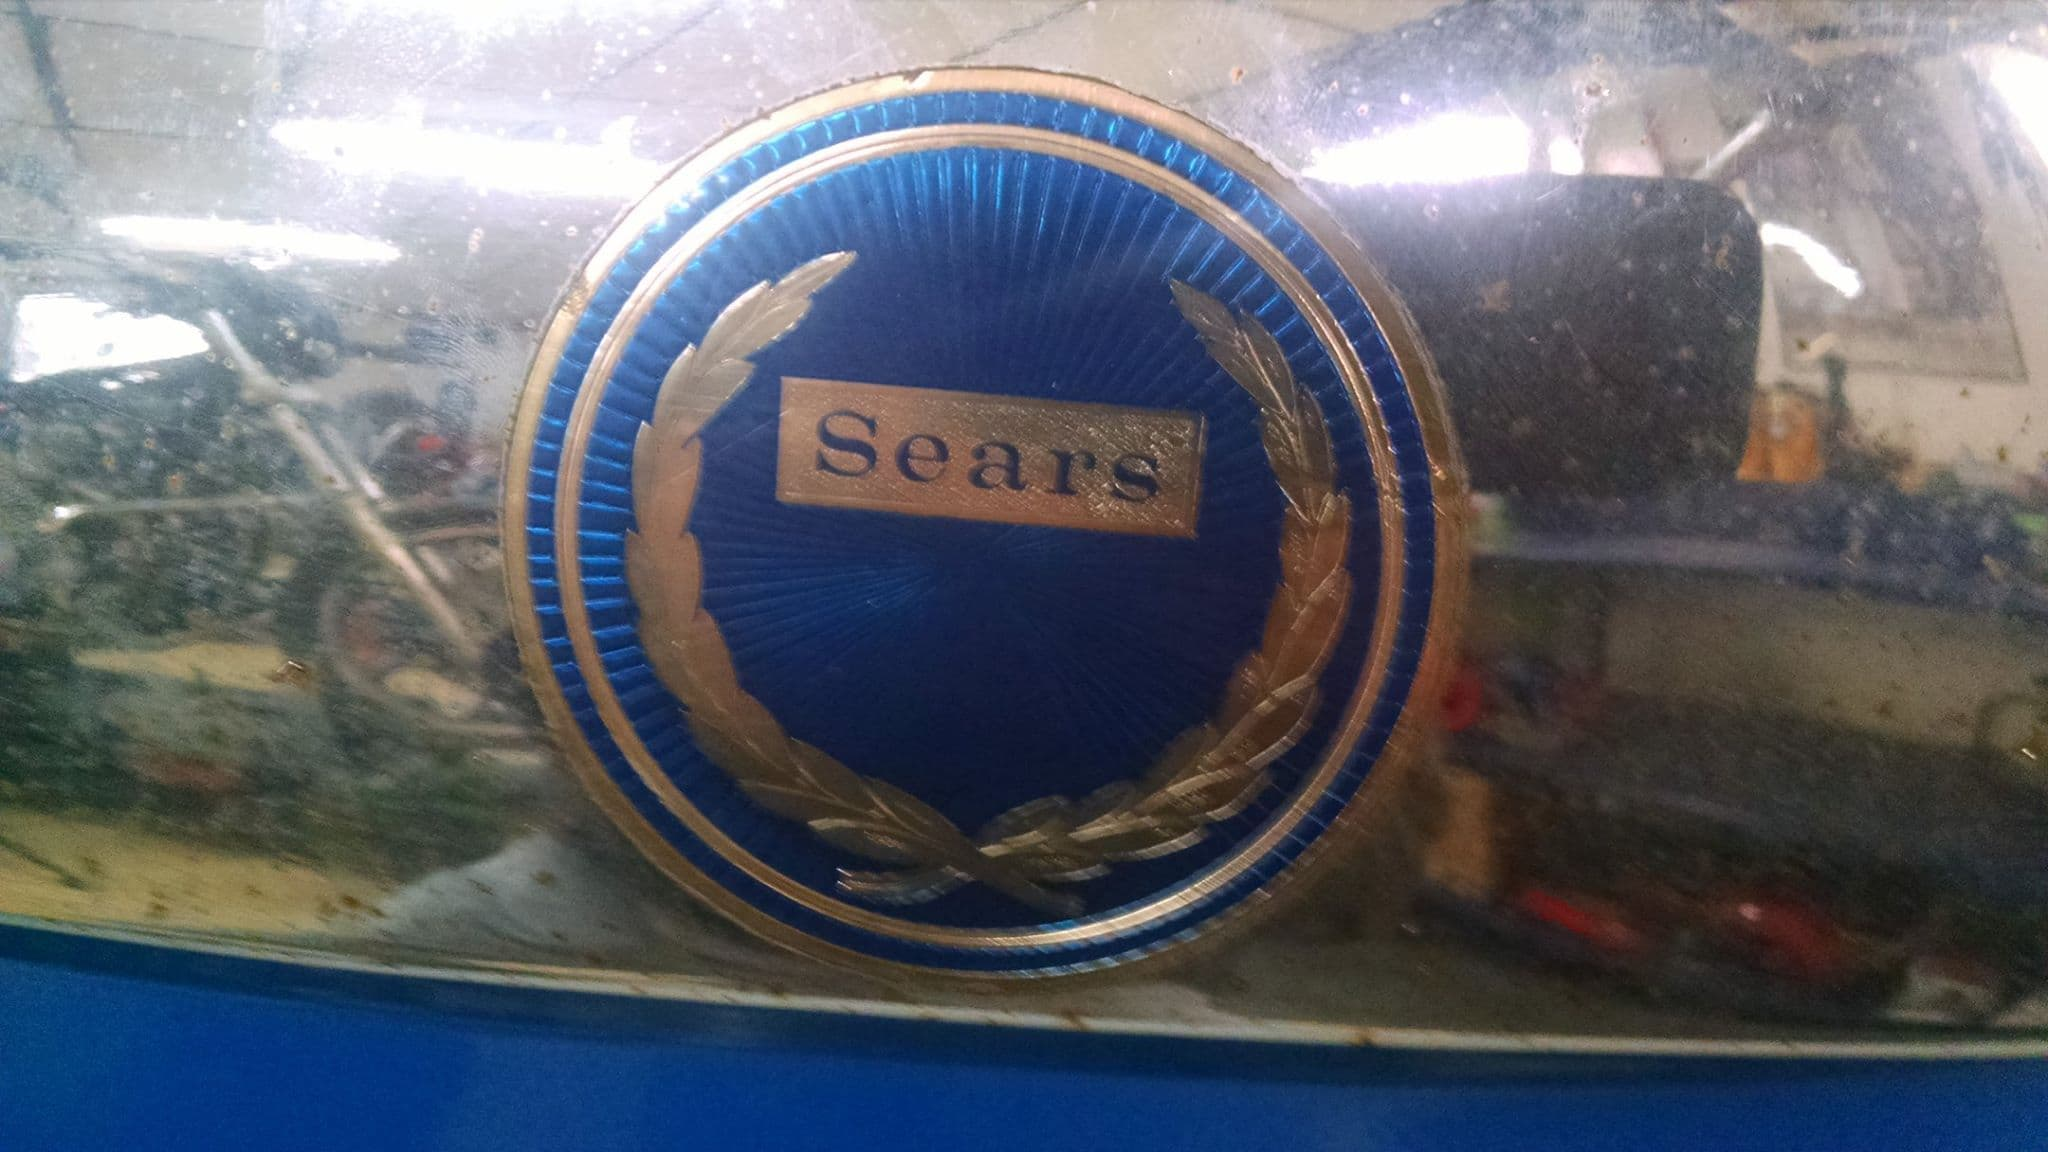 810.895111 Sears Sabre Puch